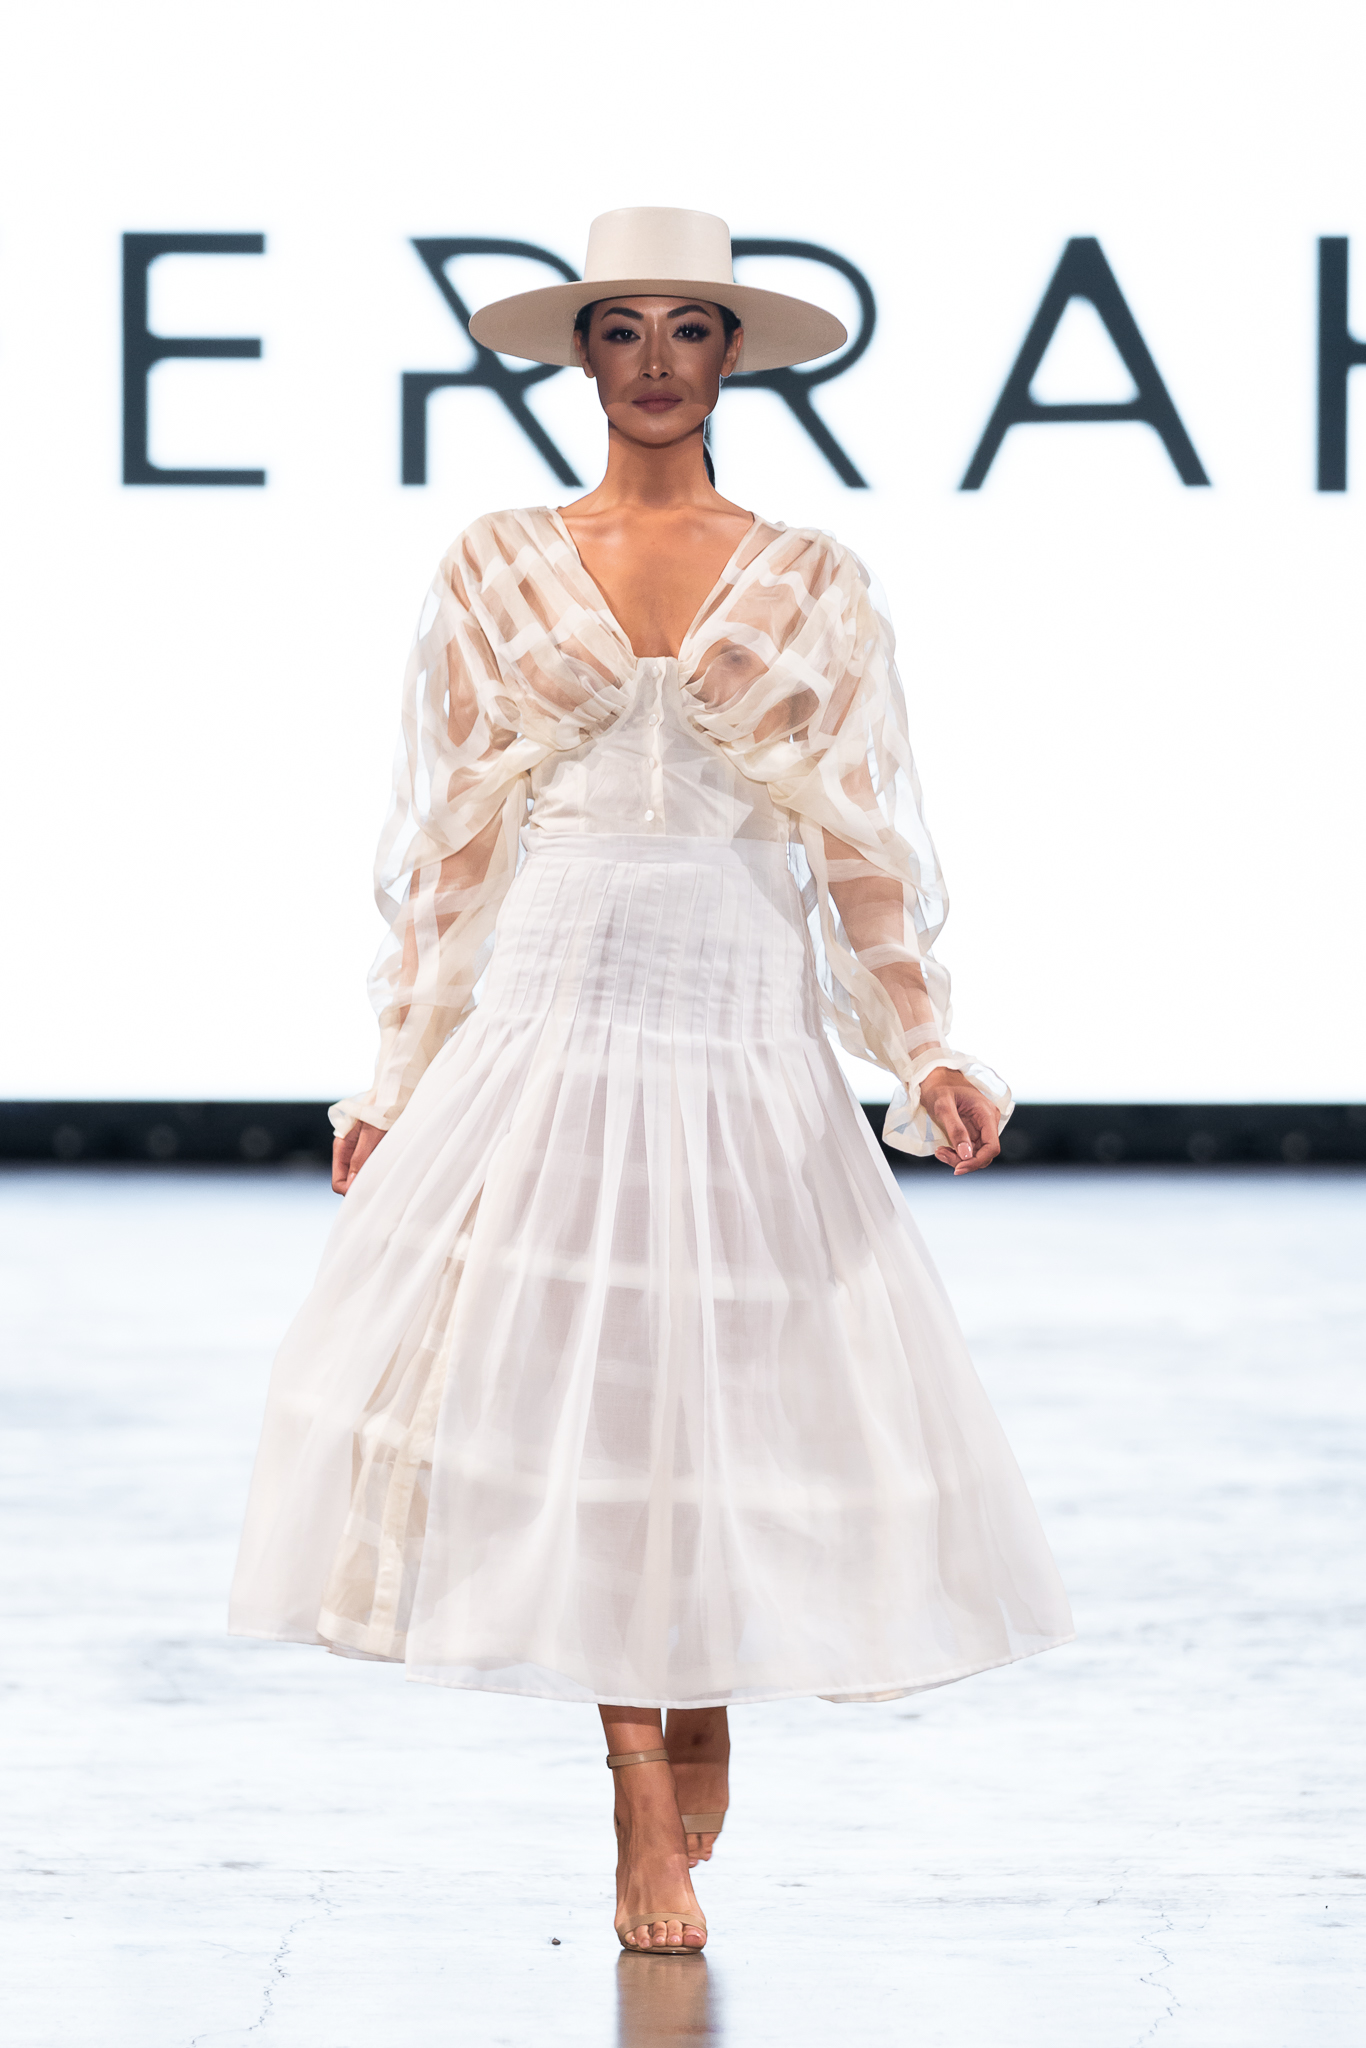 ferrah texas-based fashion designer | austin fashion week fashion x